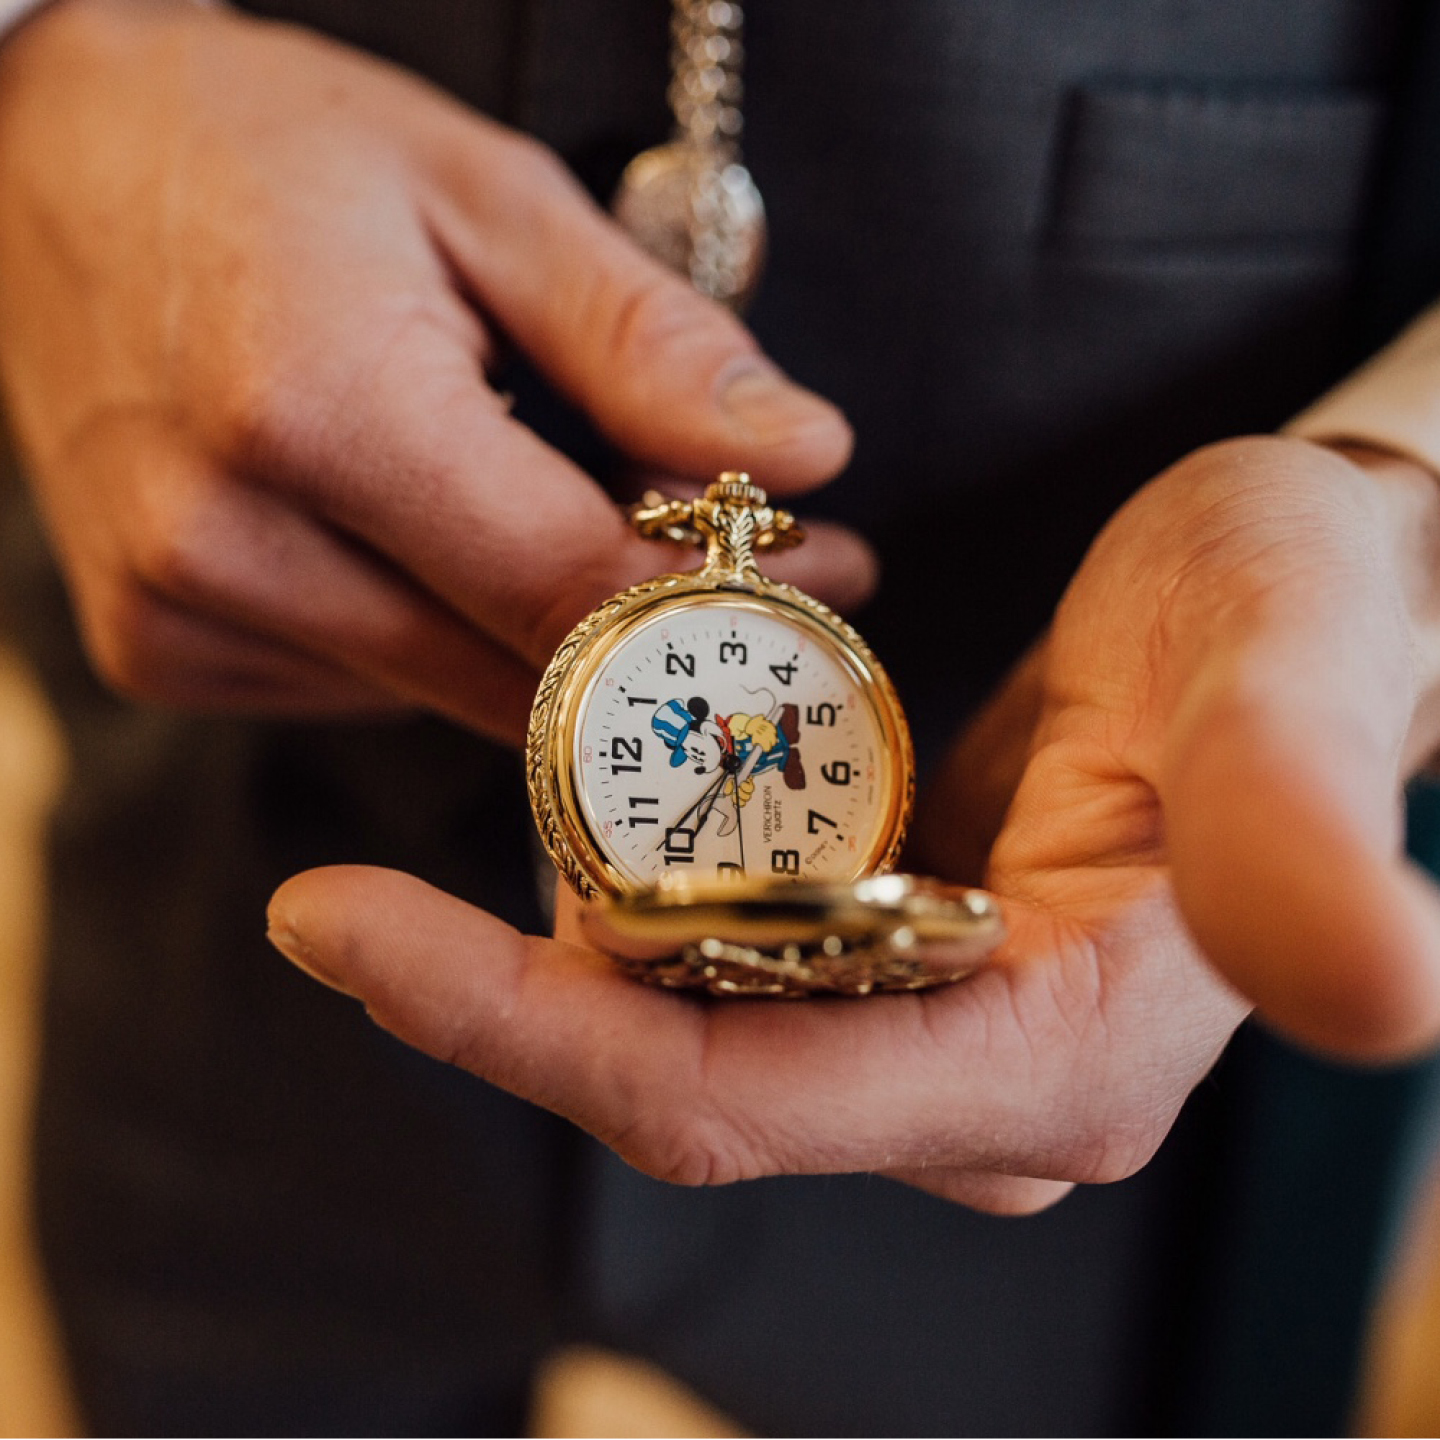 Disney themed wedding, Disney pocket watch, Disney groom's accessories